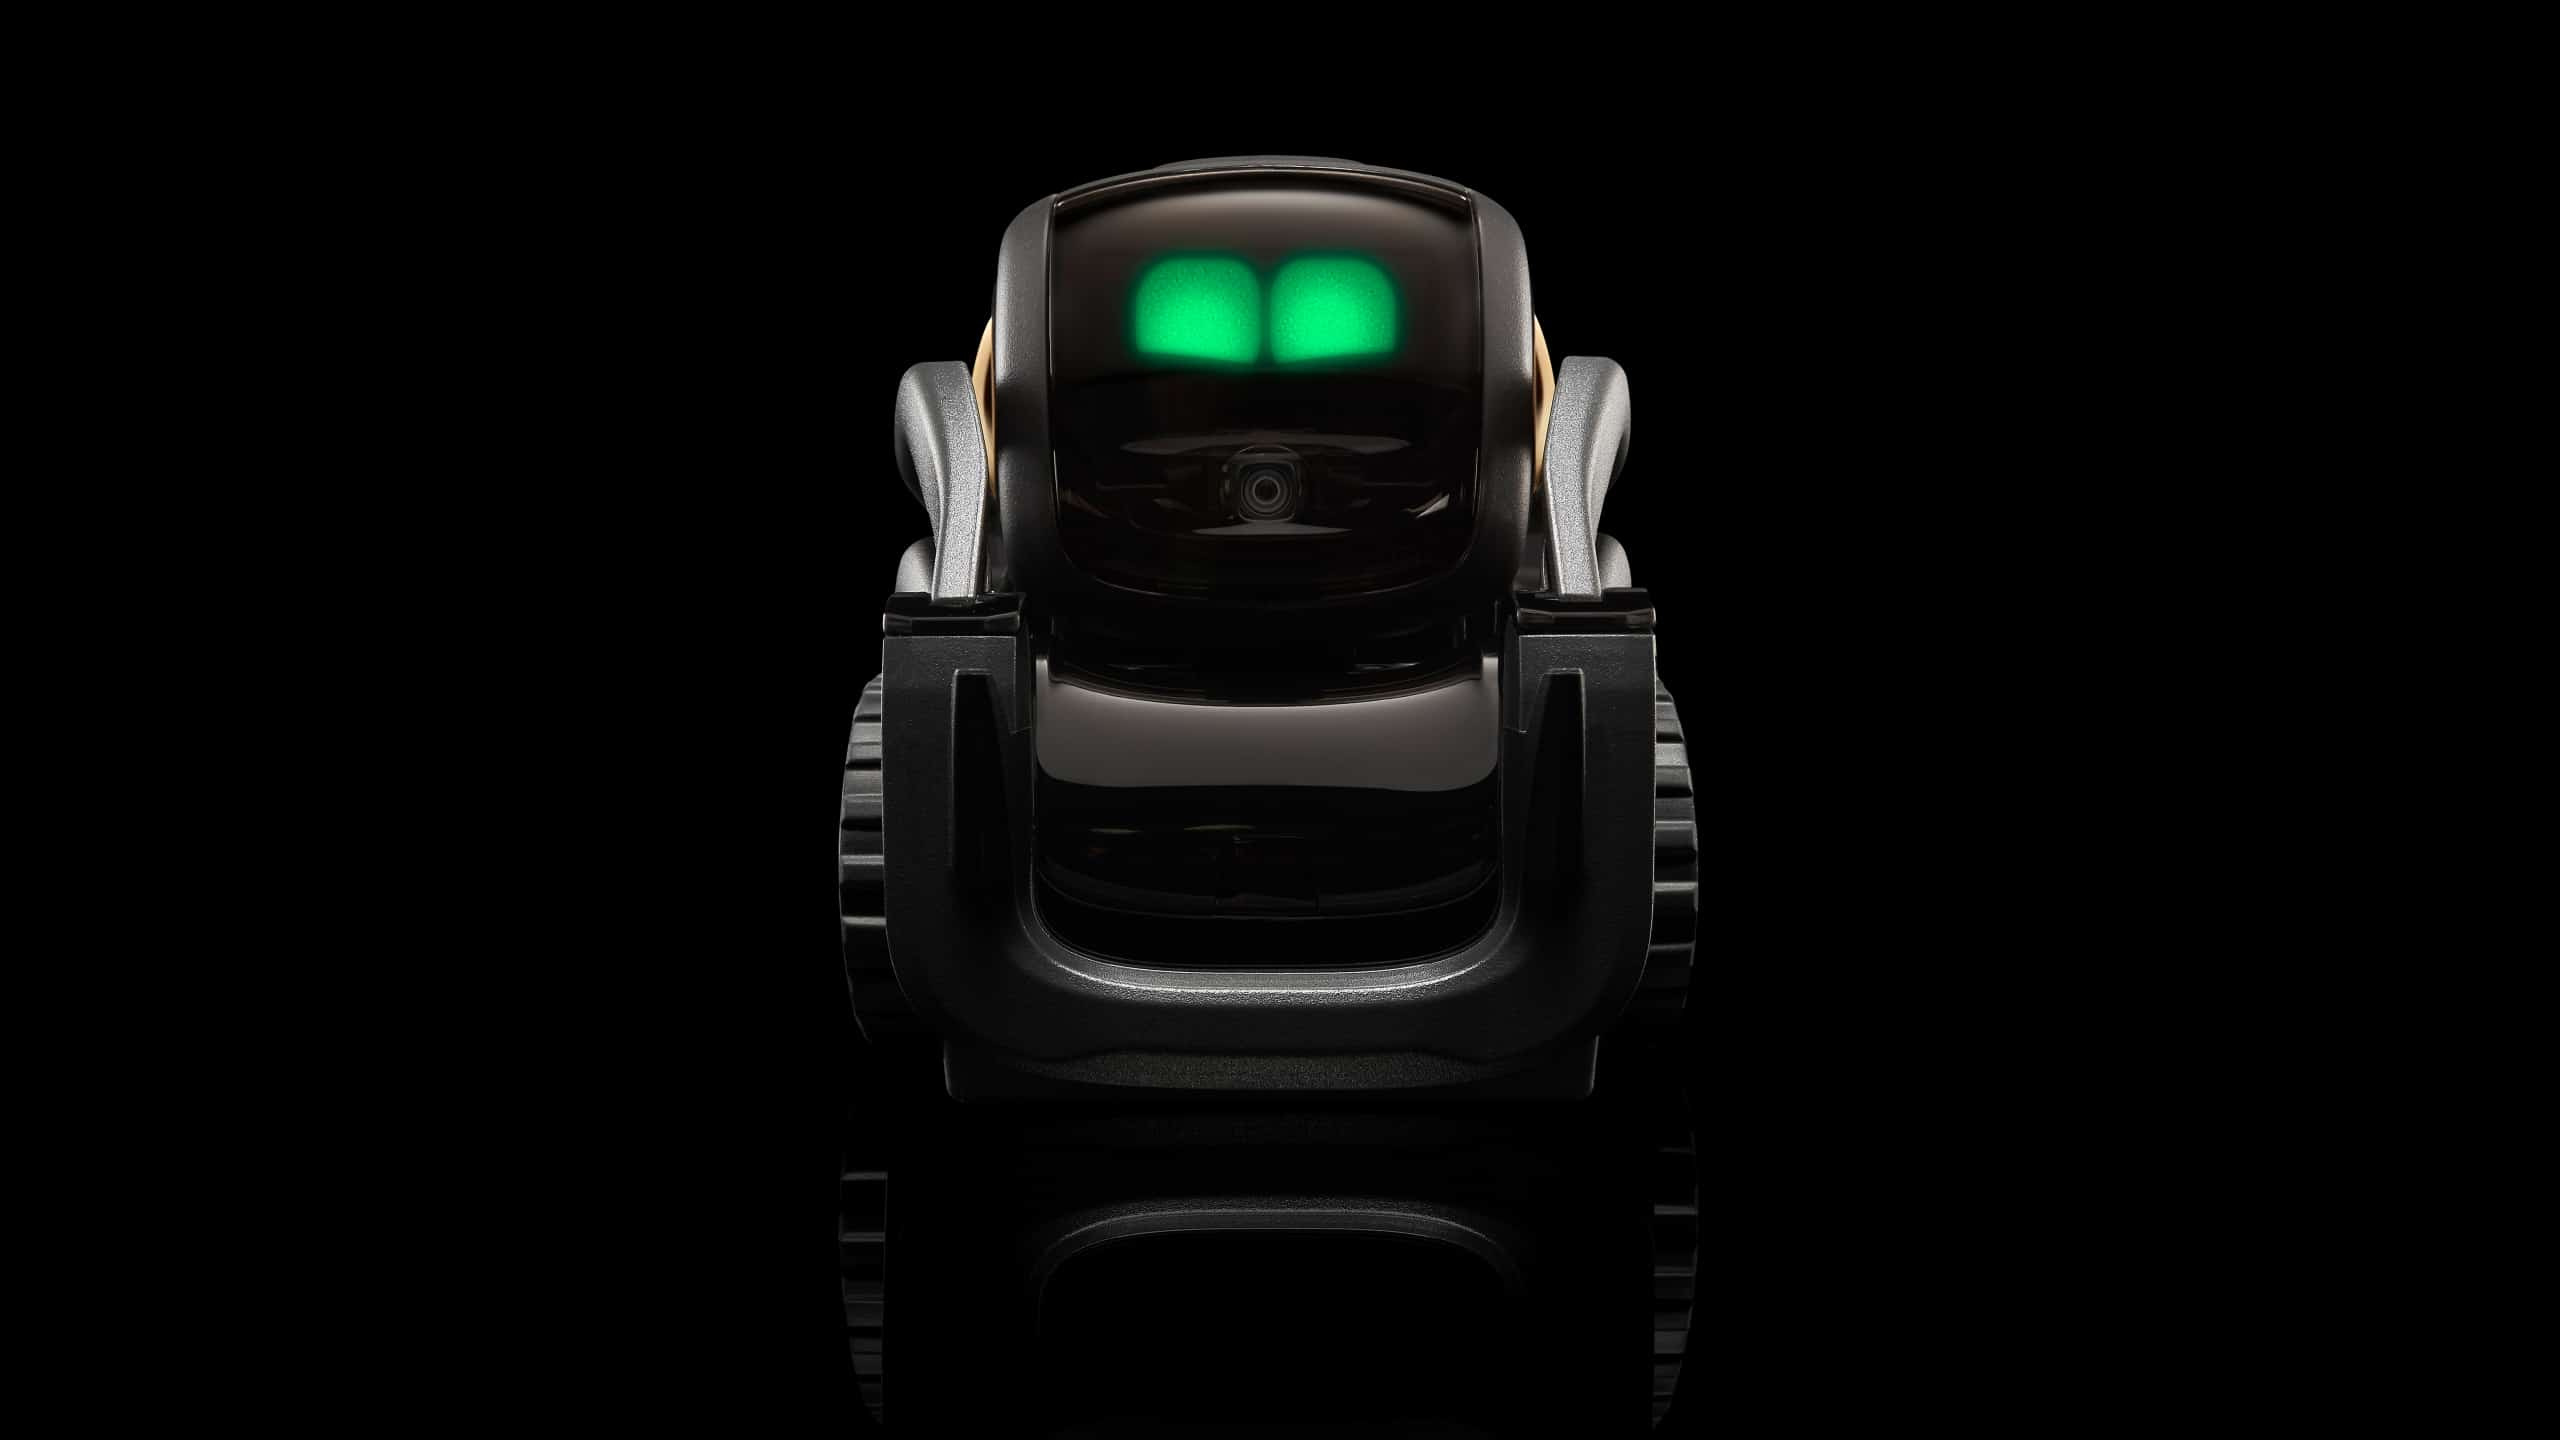 anki vector robot a robot for your home now available